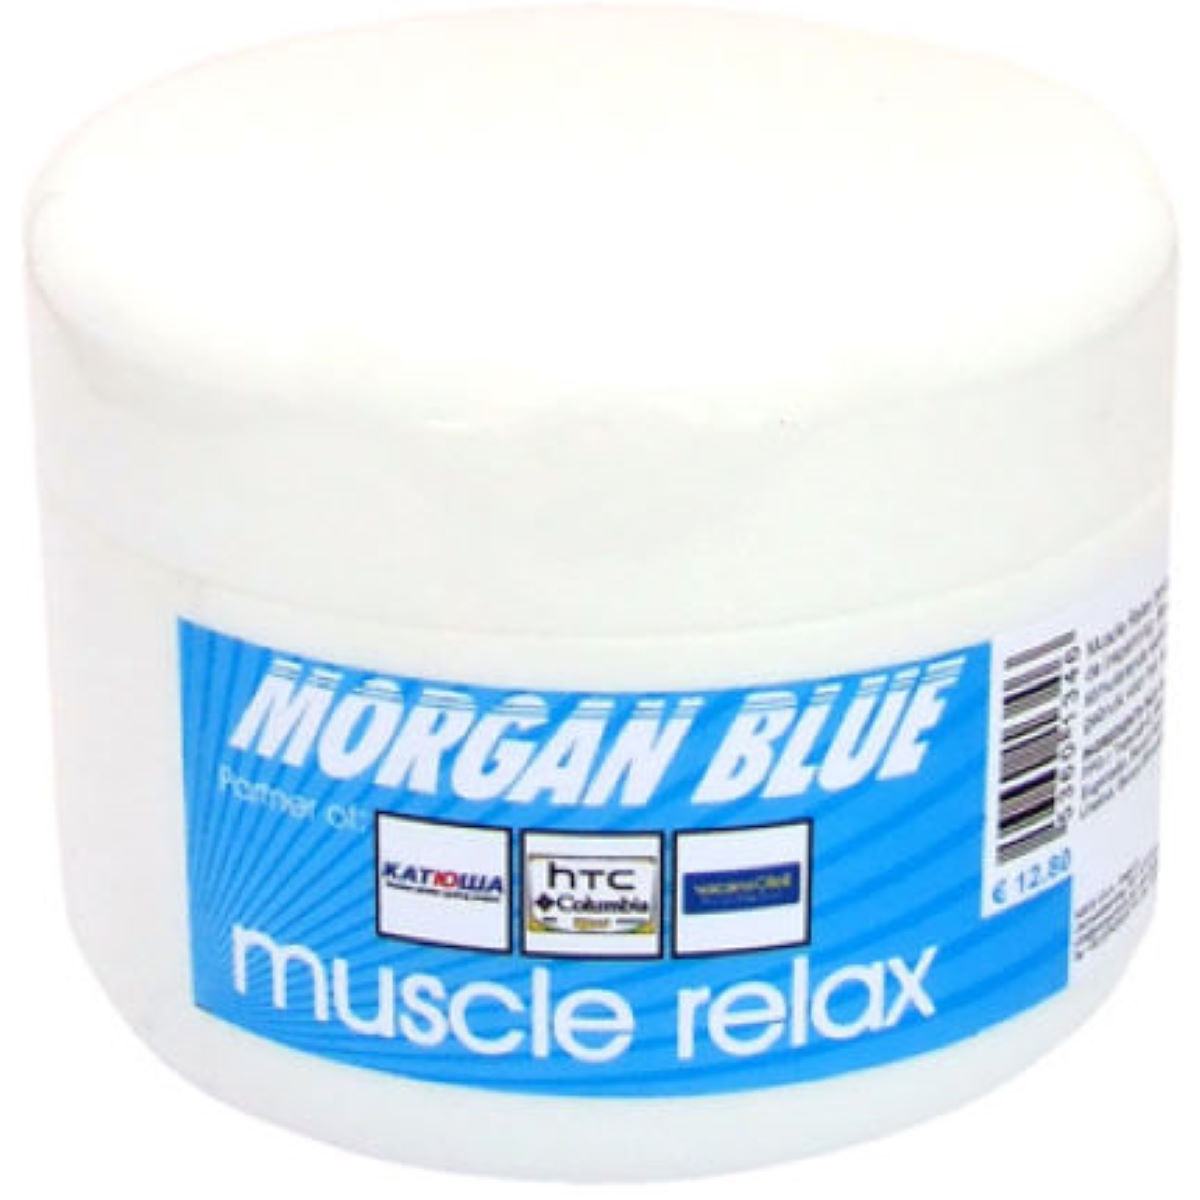 Morgan Blue Muscle Relax (200ml)